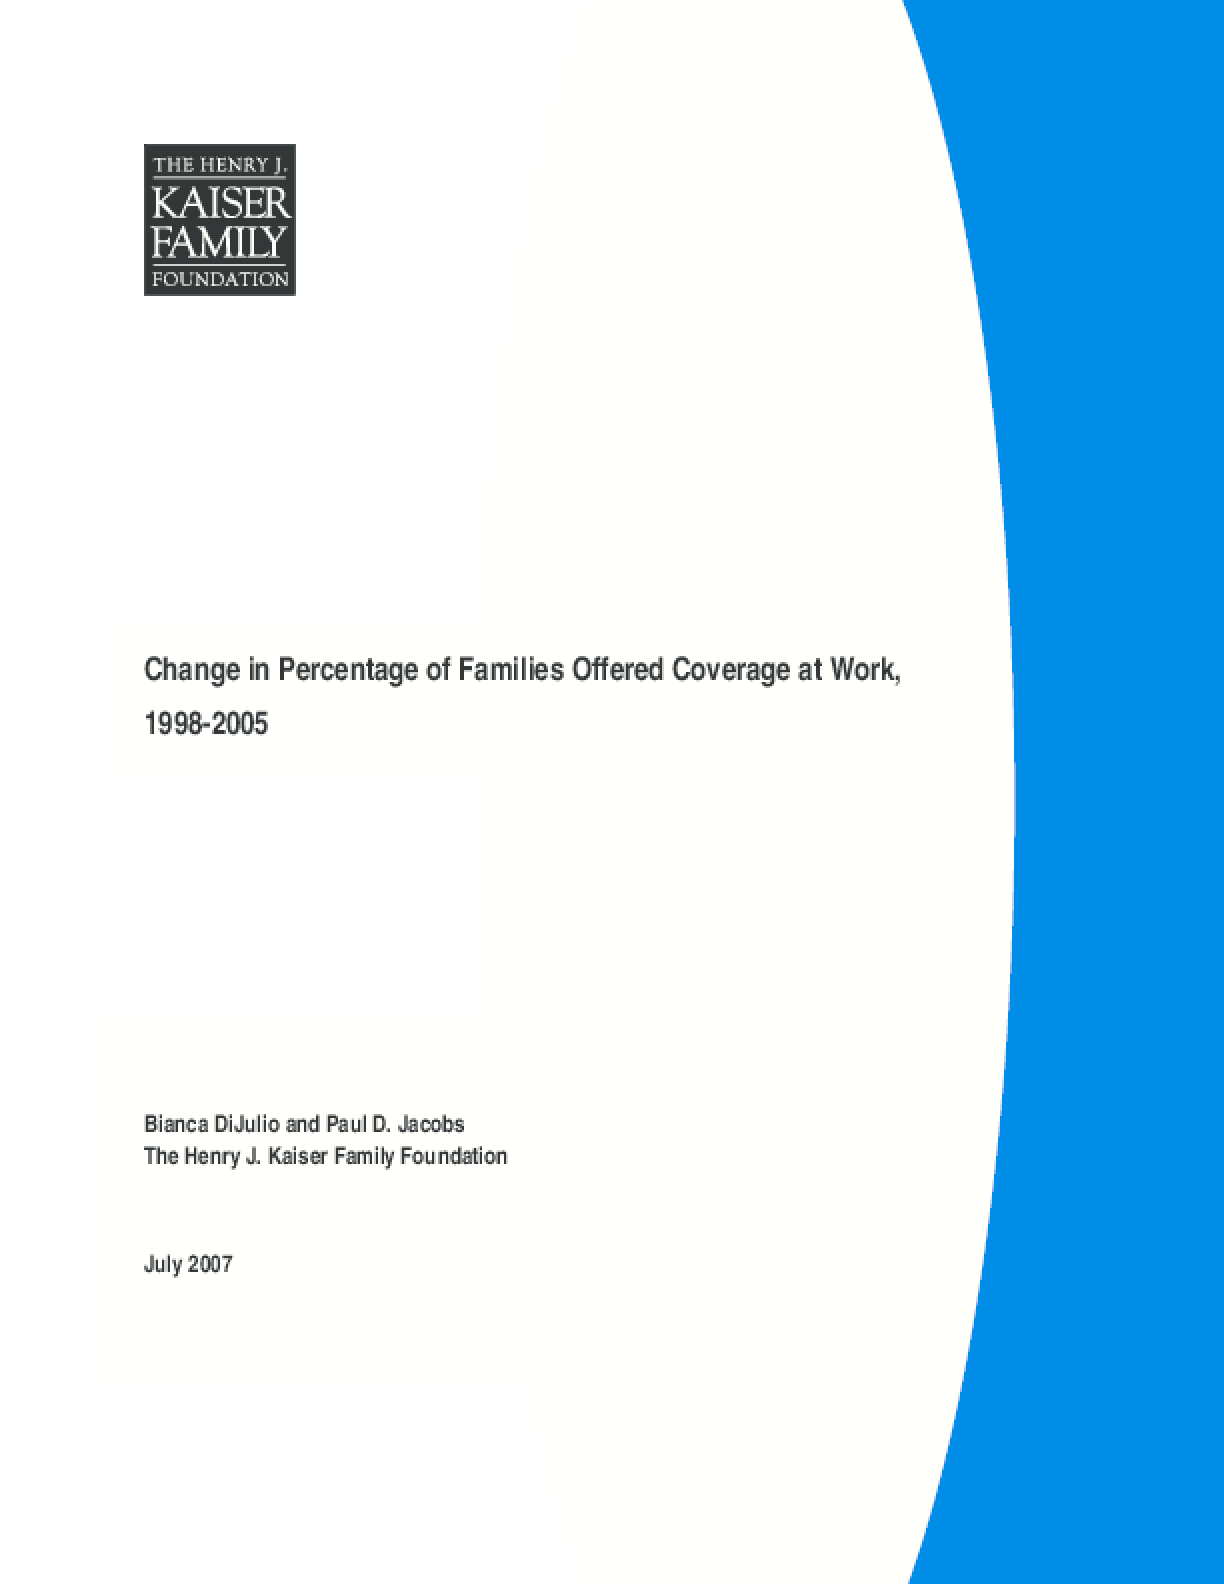 Change in Percentage of Families Offered Coverage at Work, 1998-2005